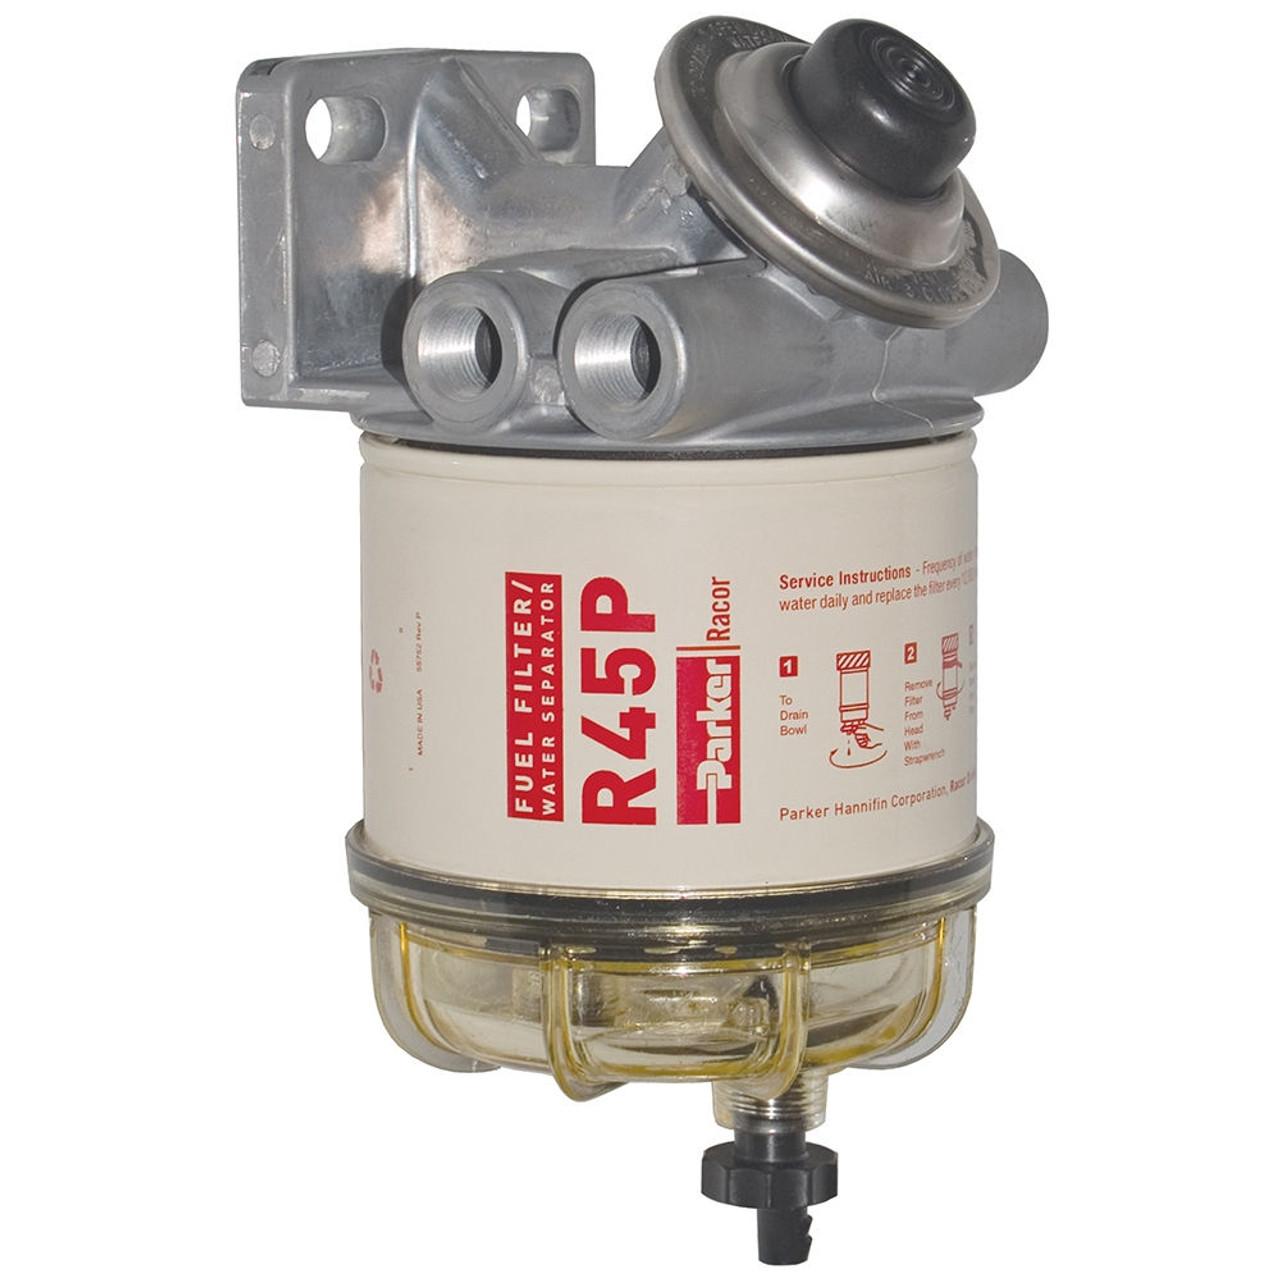 racor 400 series 45 gph diesel spin-on fuel filter - 30 micron - 6